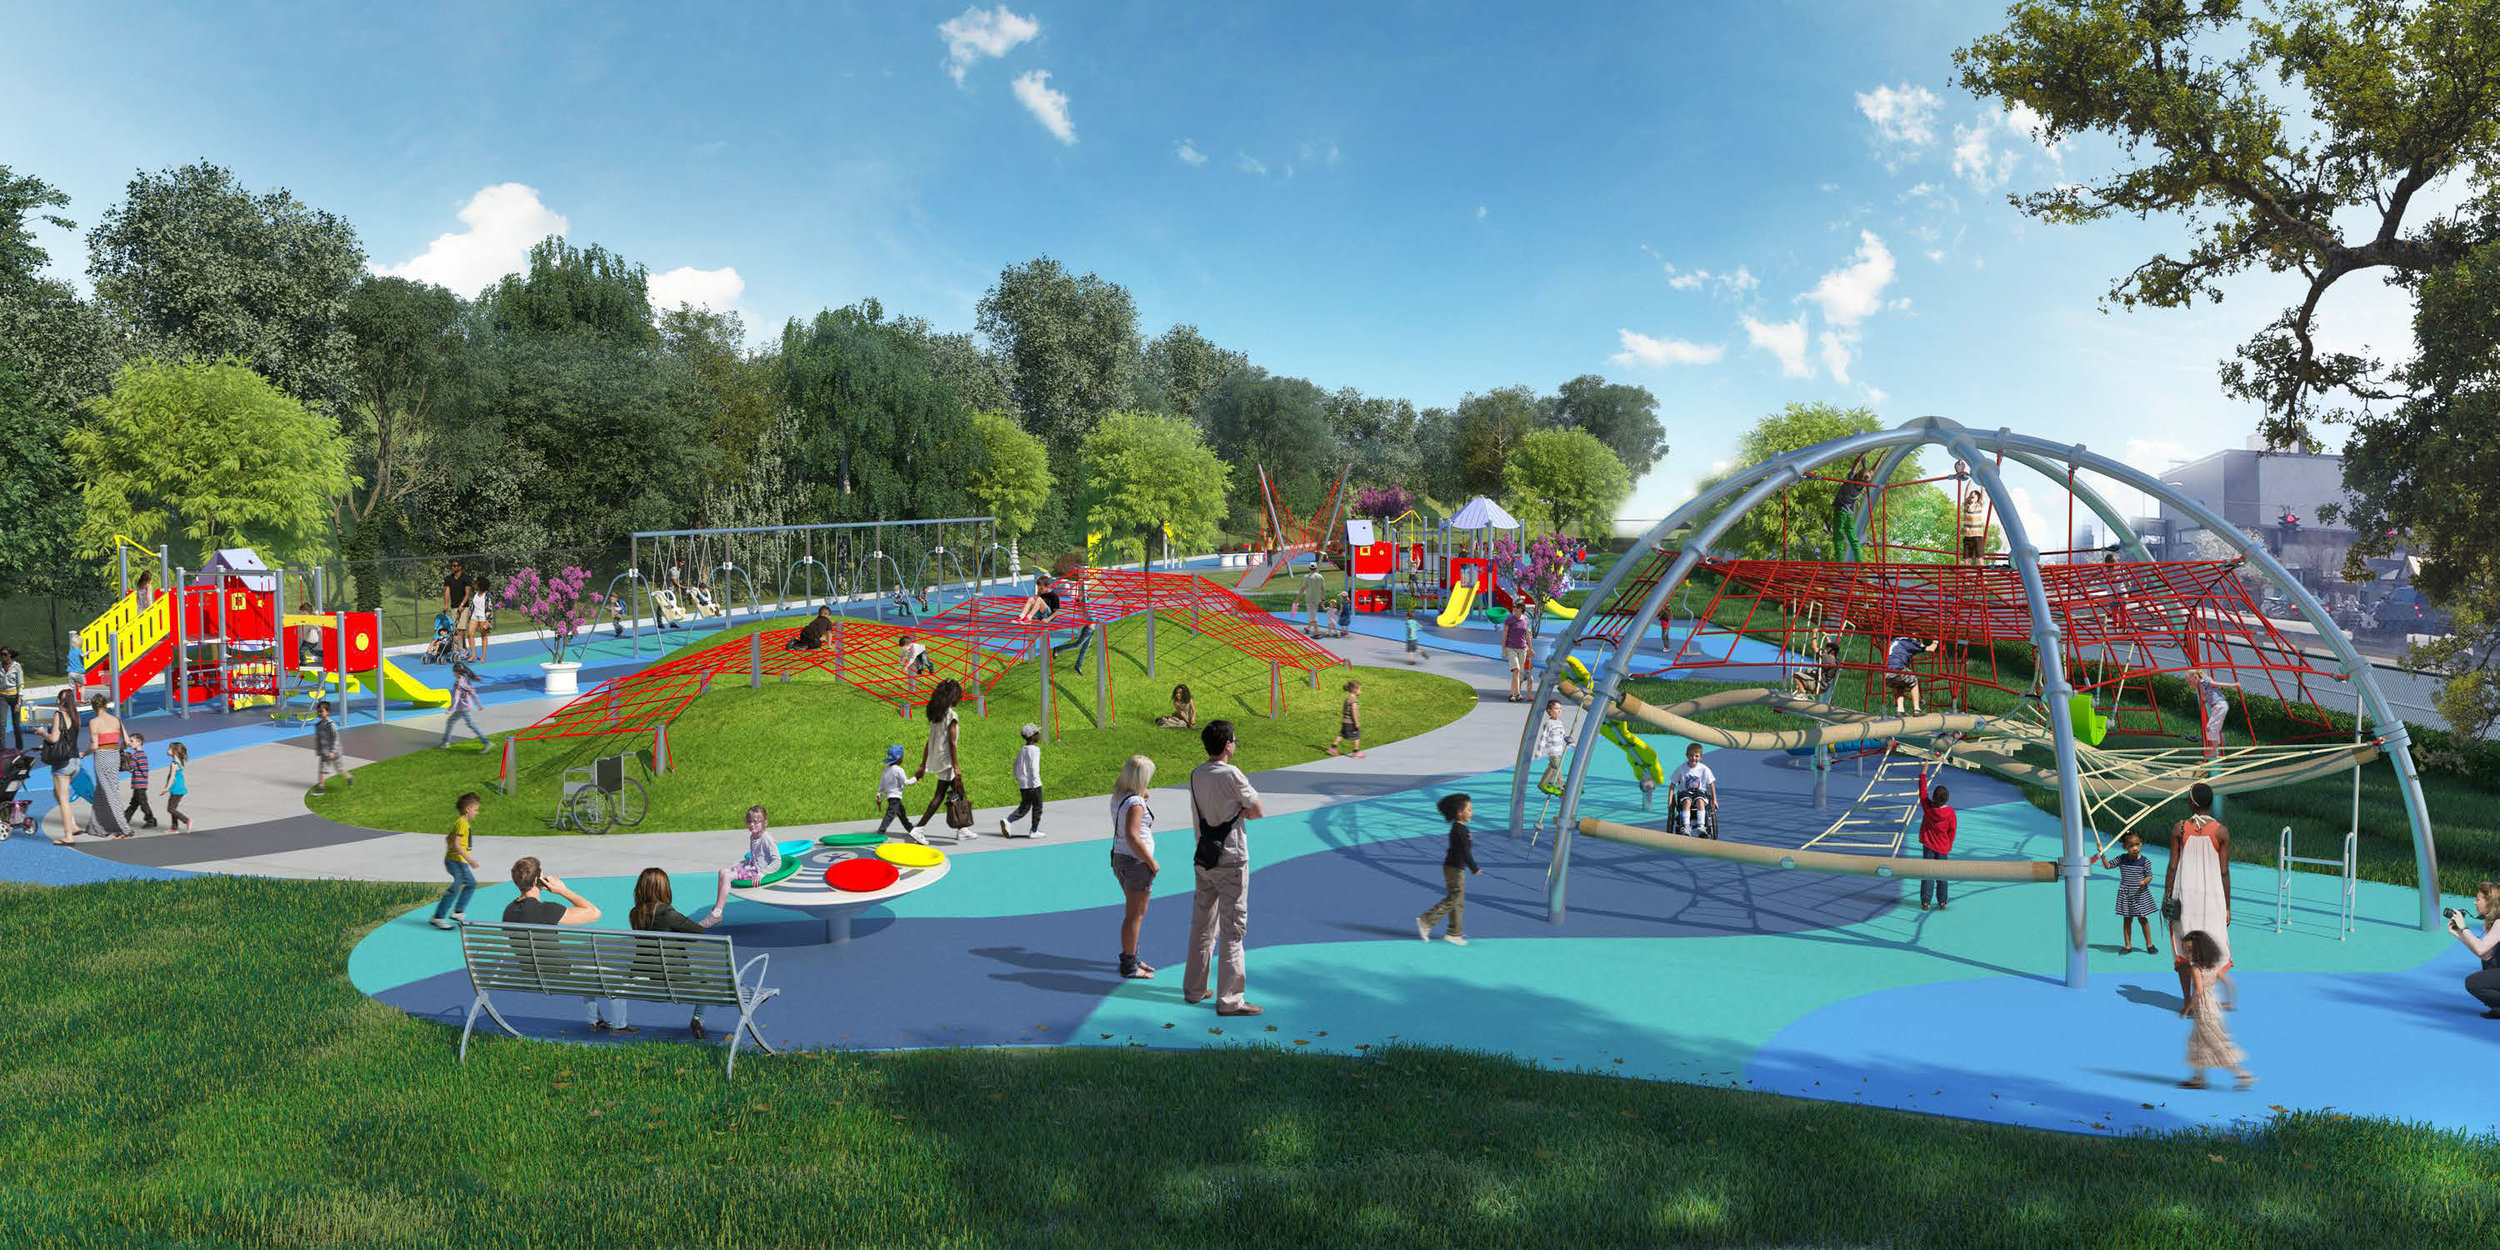 The Tommy Brull Foundation has donated $40,000 to help fund this state of the art adaptive inclusive playground located at Hickey Field in Rockville Centre.  We continue to support this project and hope that it will be completed within the next 1-2 years.